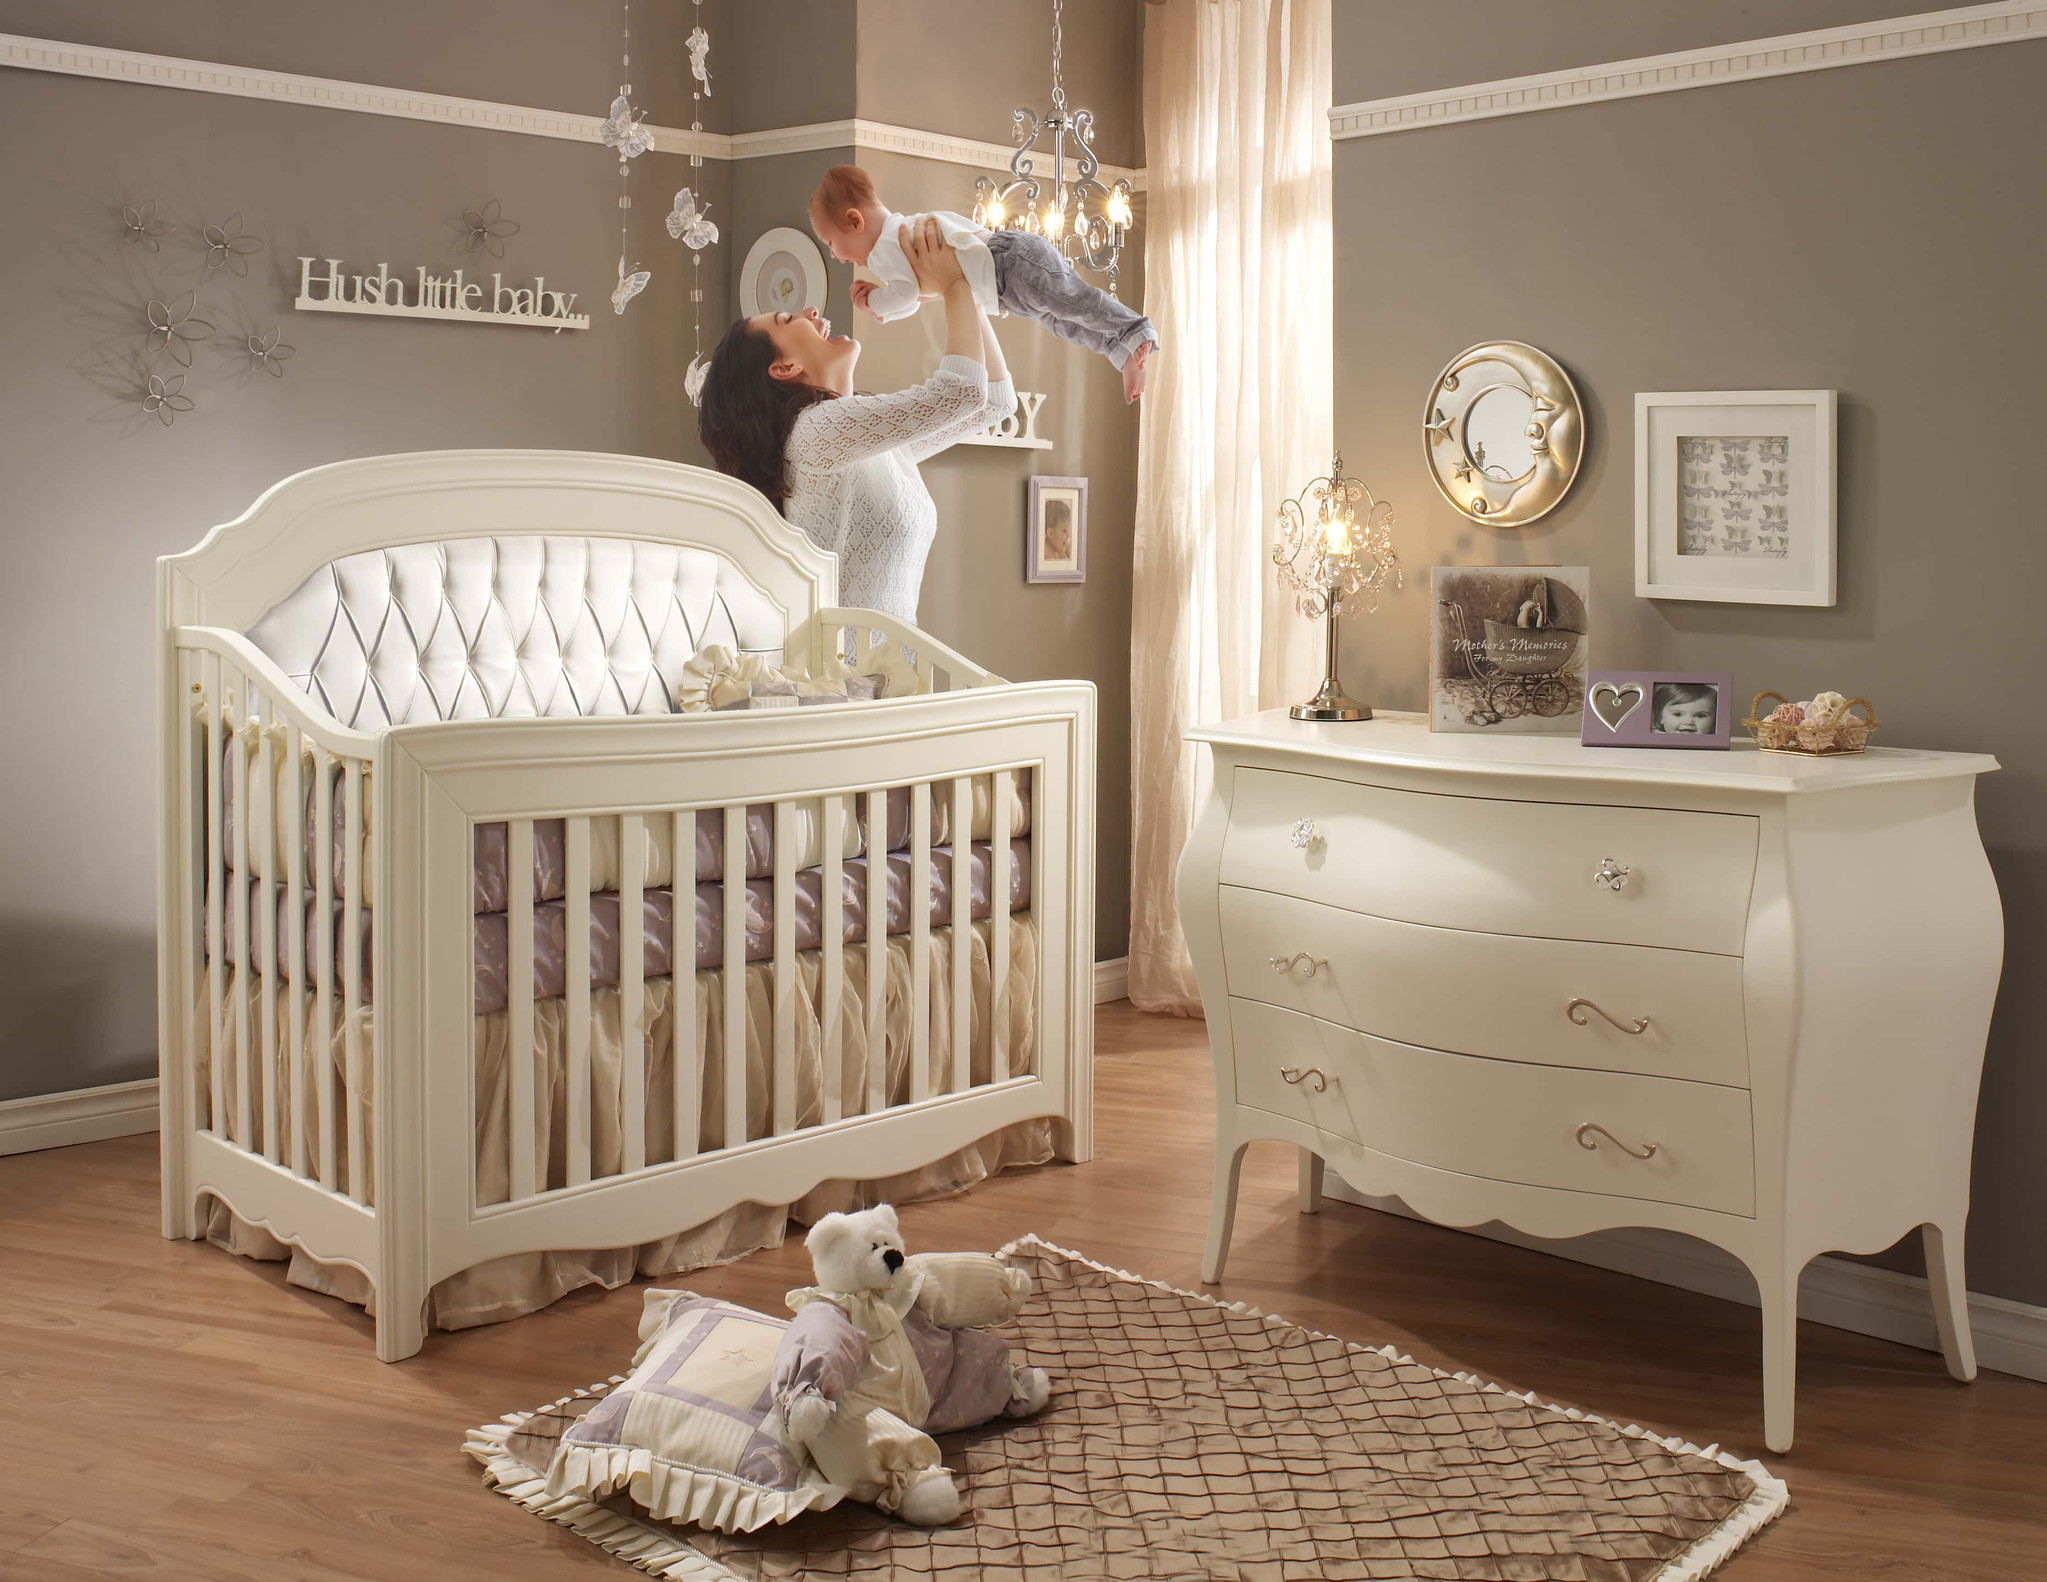 Natart baby furniture